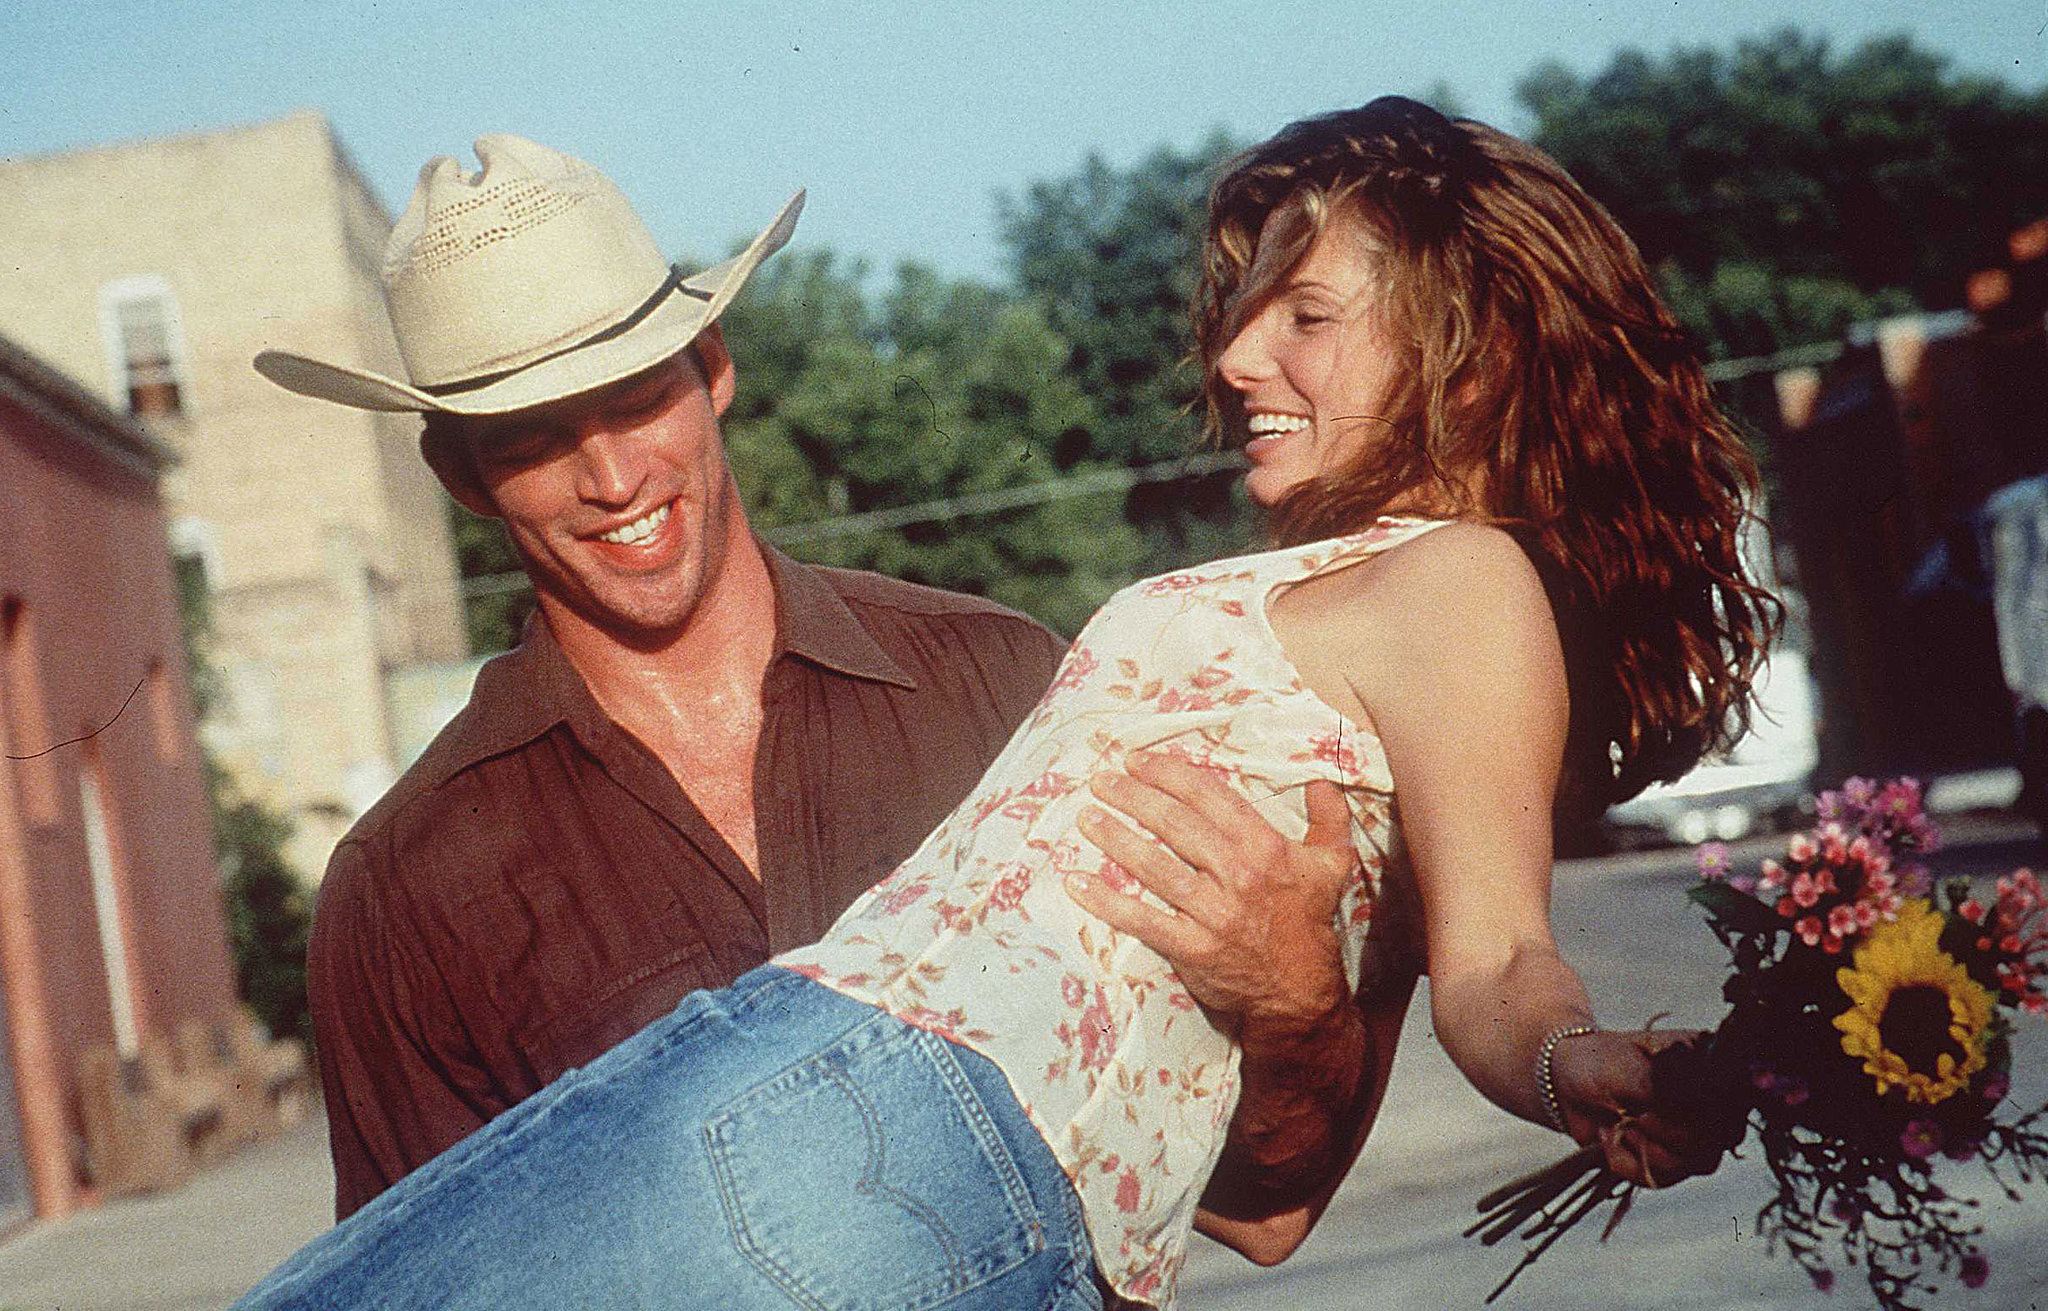 Sandra and Harry Connick Jr. filmed Hope Floats together in February 1998.